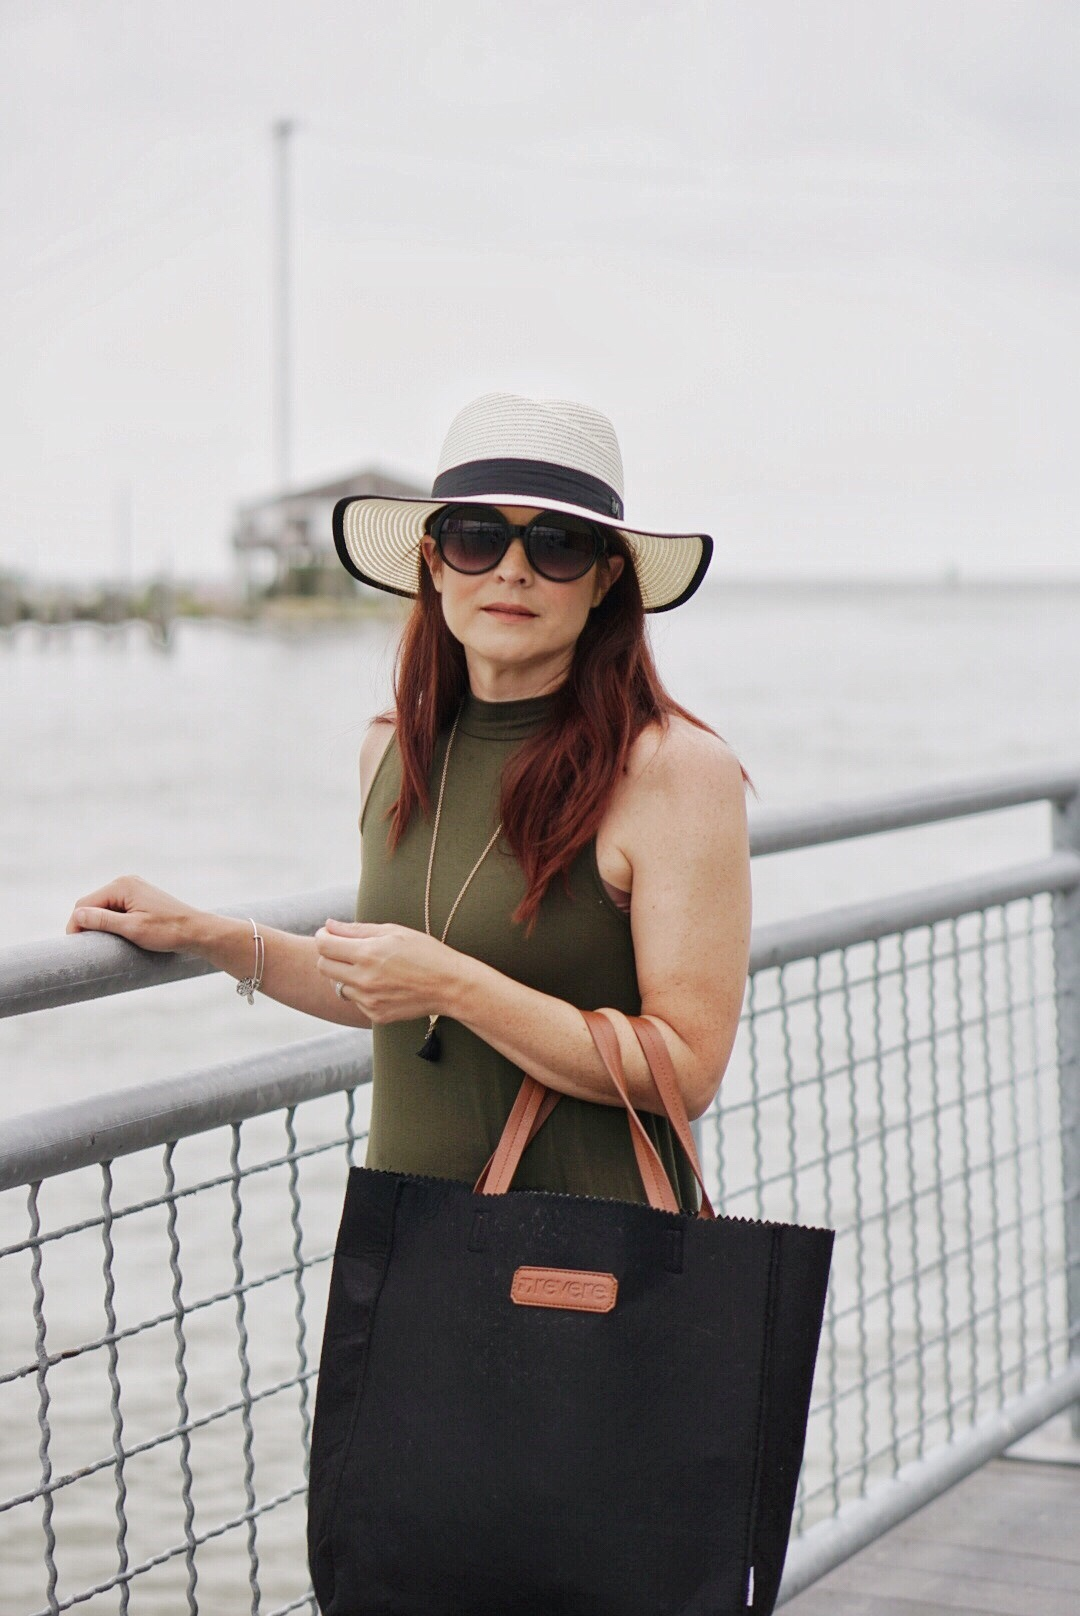 summer style ideas, outfits with hats, black tote bags, neutral style